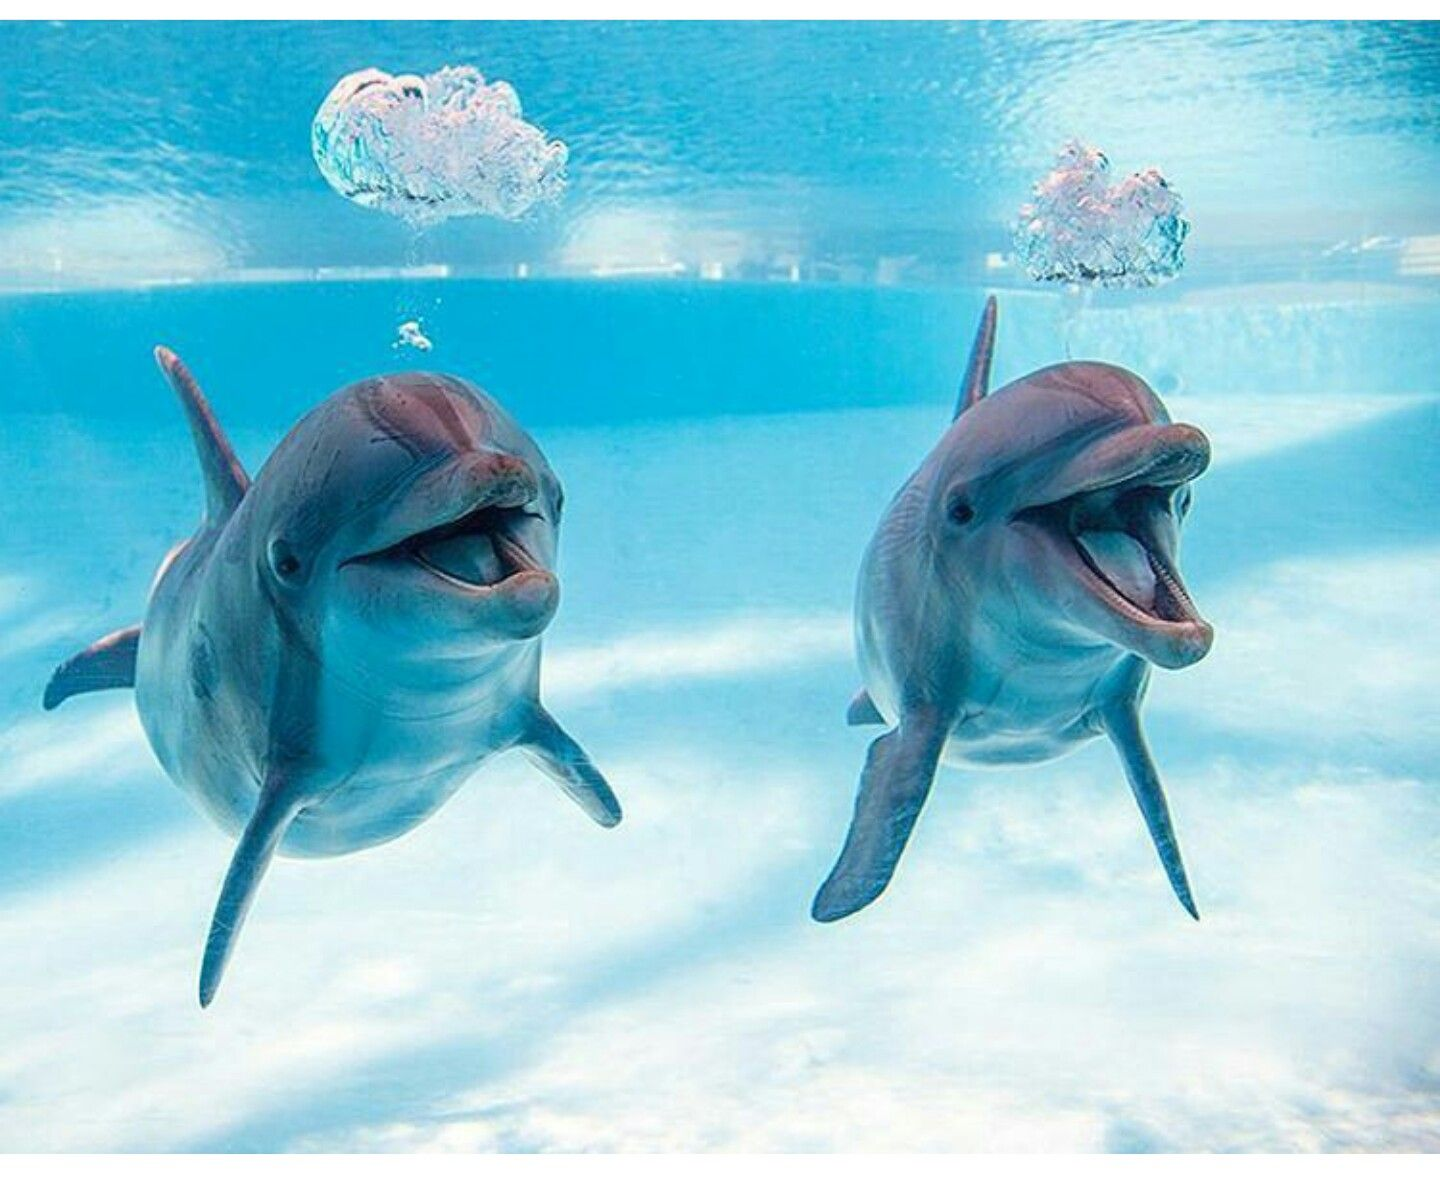 So cute, always smiling. Dolphins